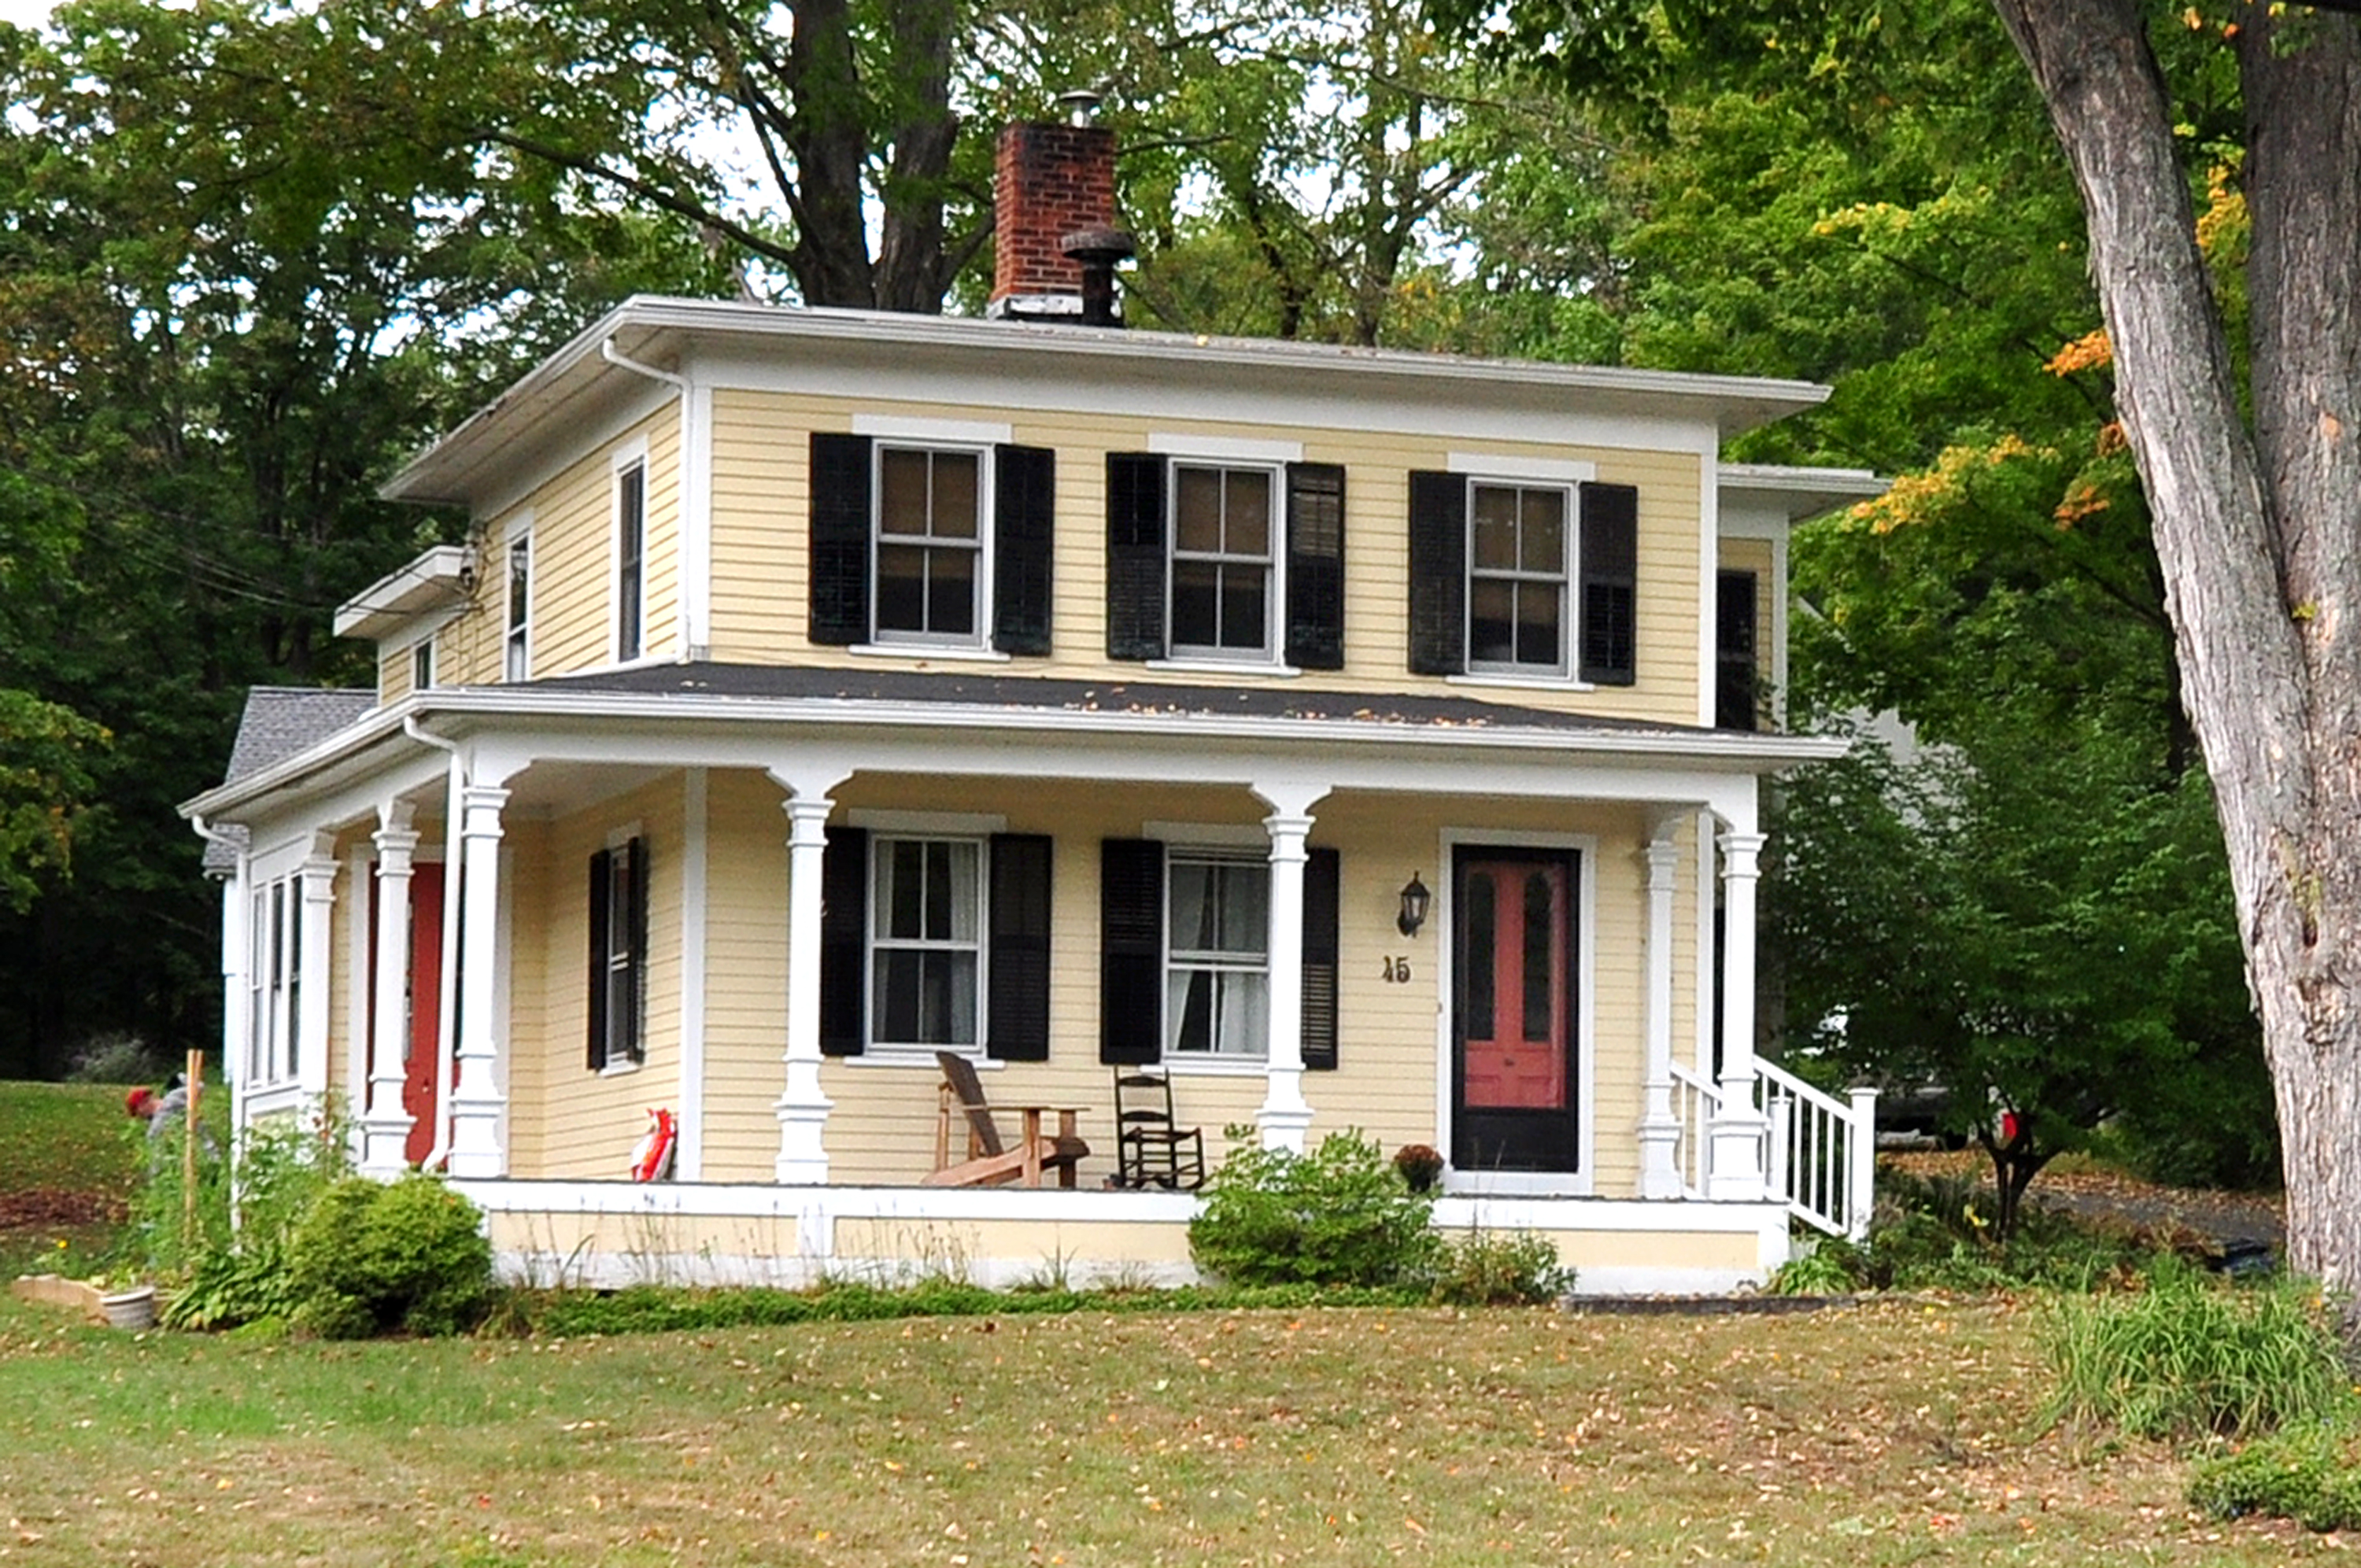 Single Family Home for Sale at Antique with newer detached Guest House 45 & 47 Main St North Woodbury, Connecticut, 06798 United States